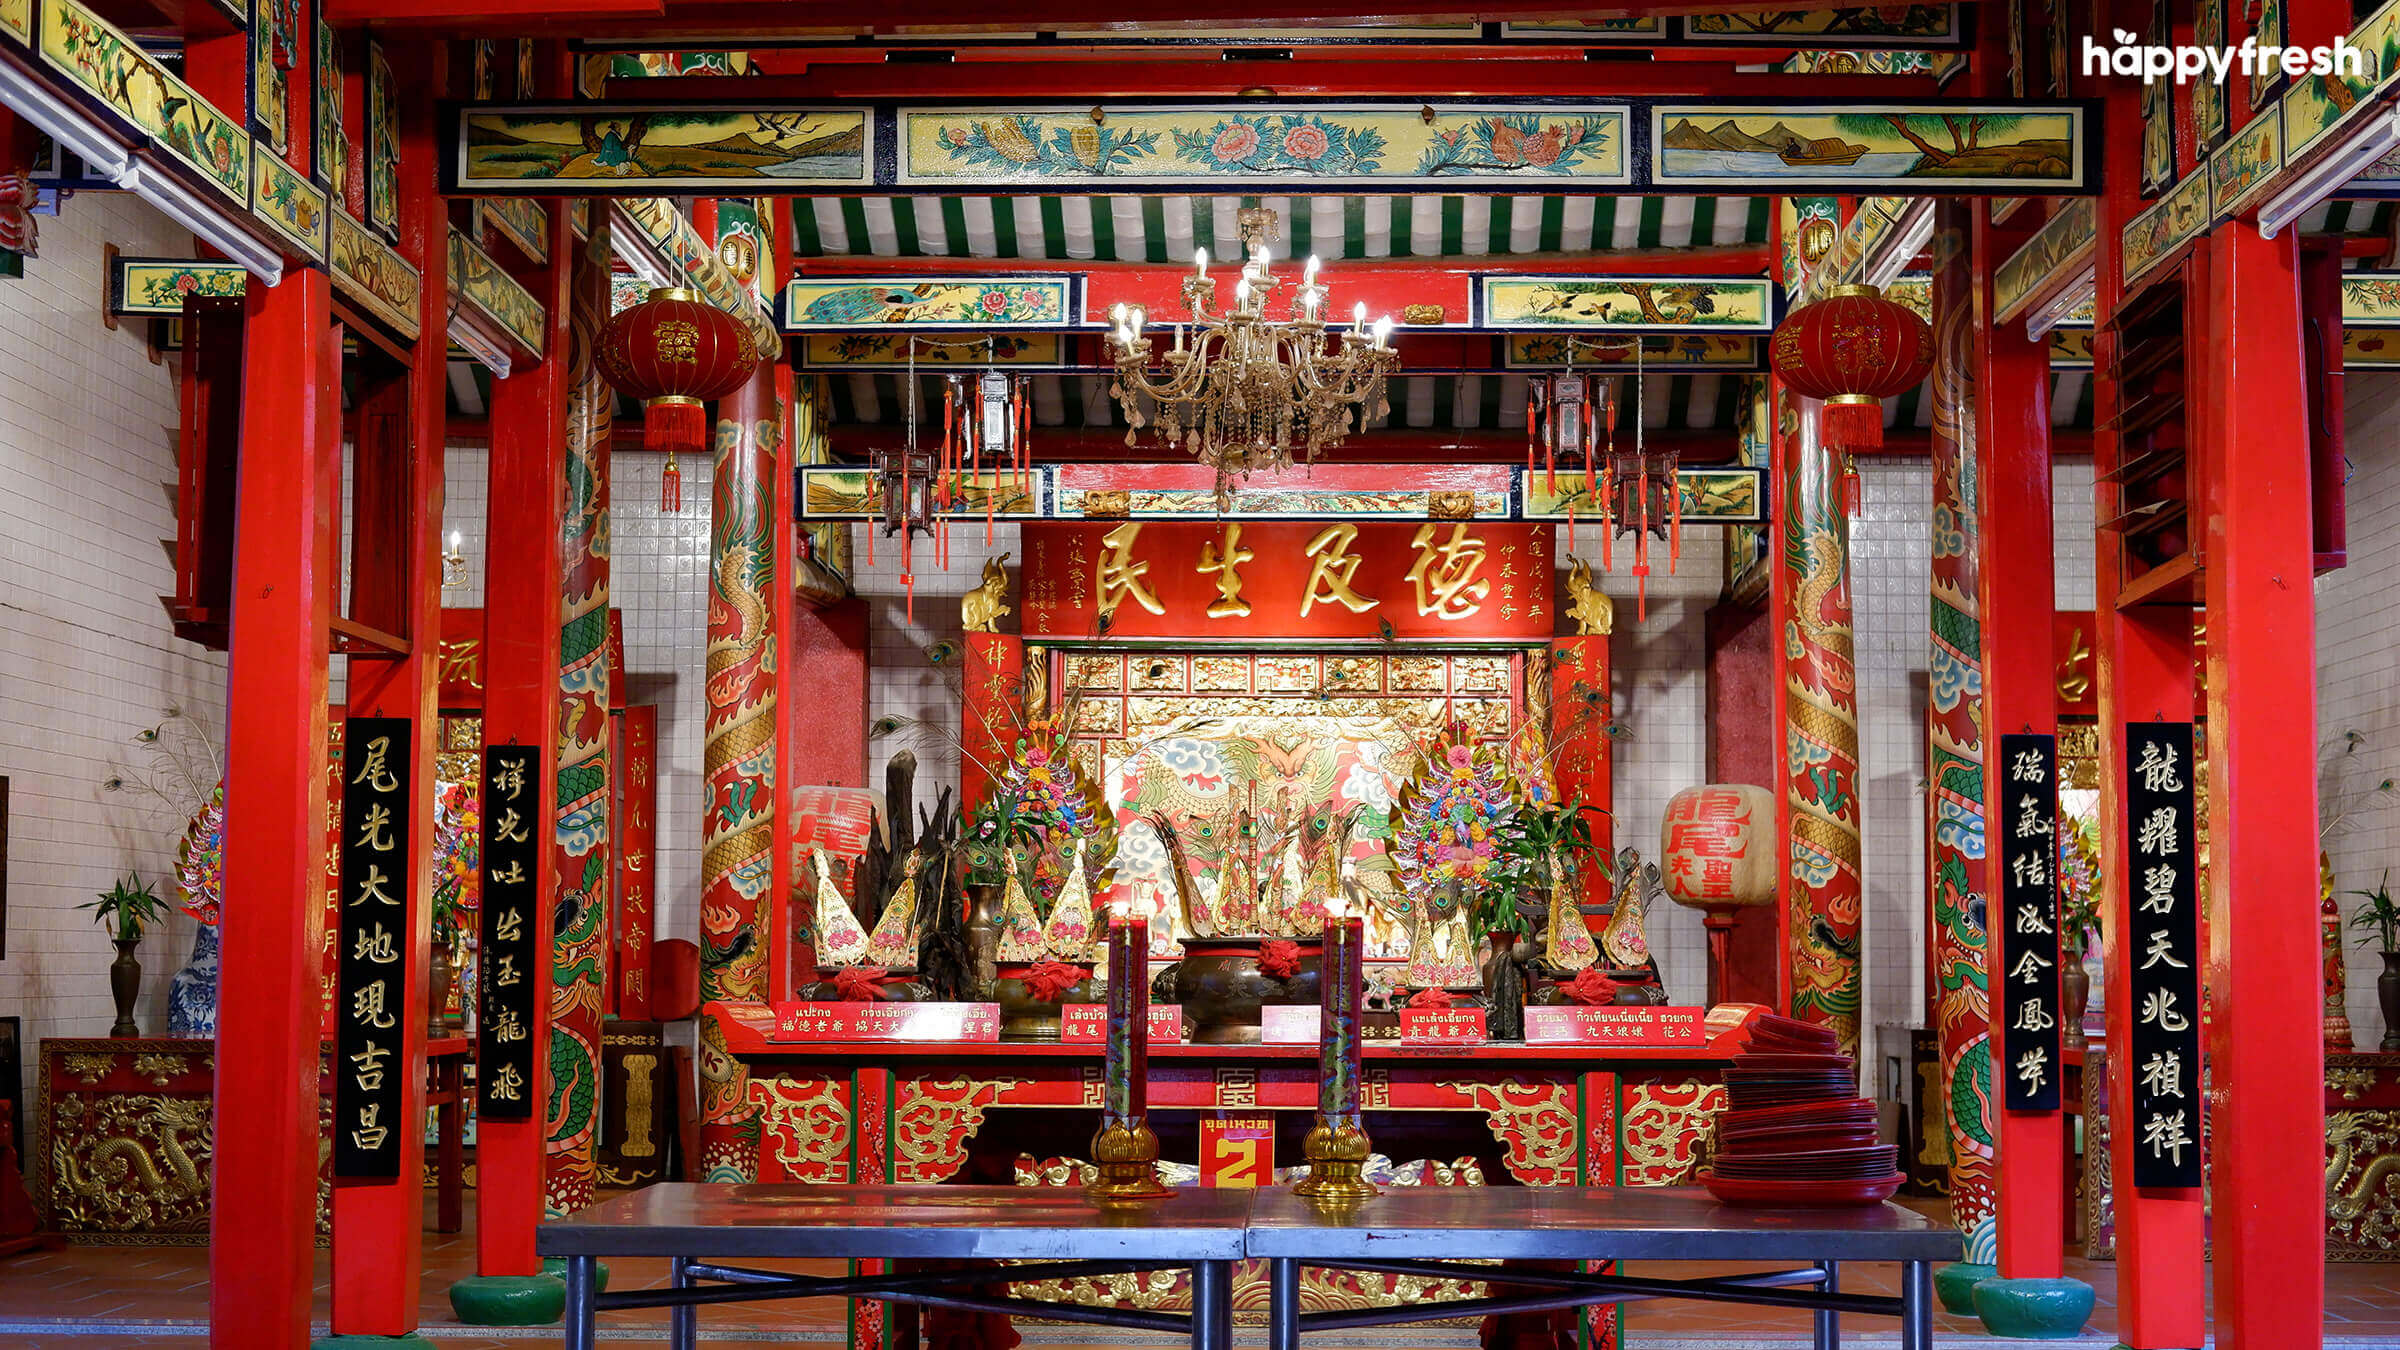 HappyFresh_Visit_6_Chinese_Shrines_In_Chinatown_Leng_Buai_Ia_Shrine